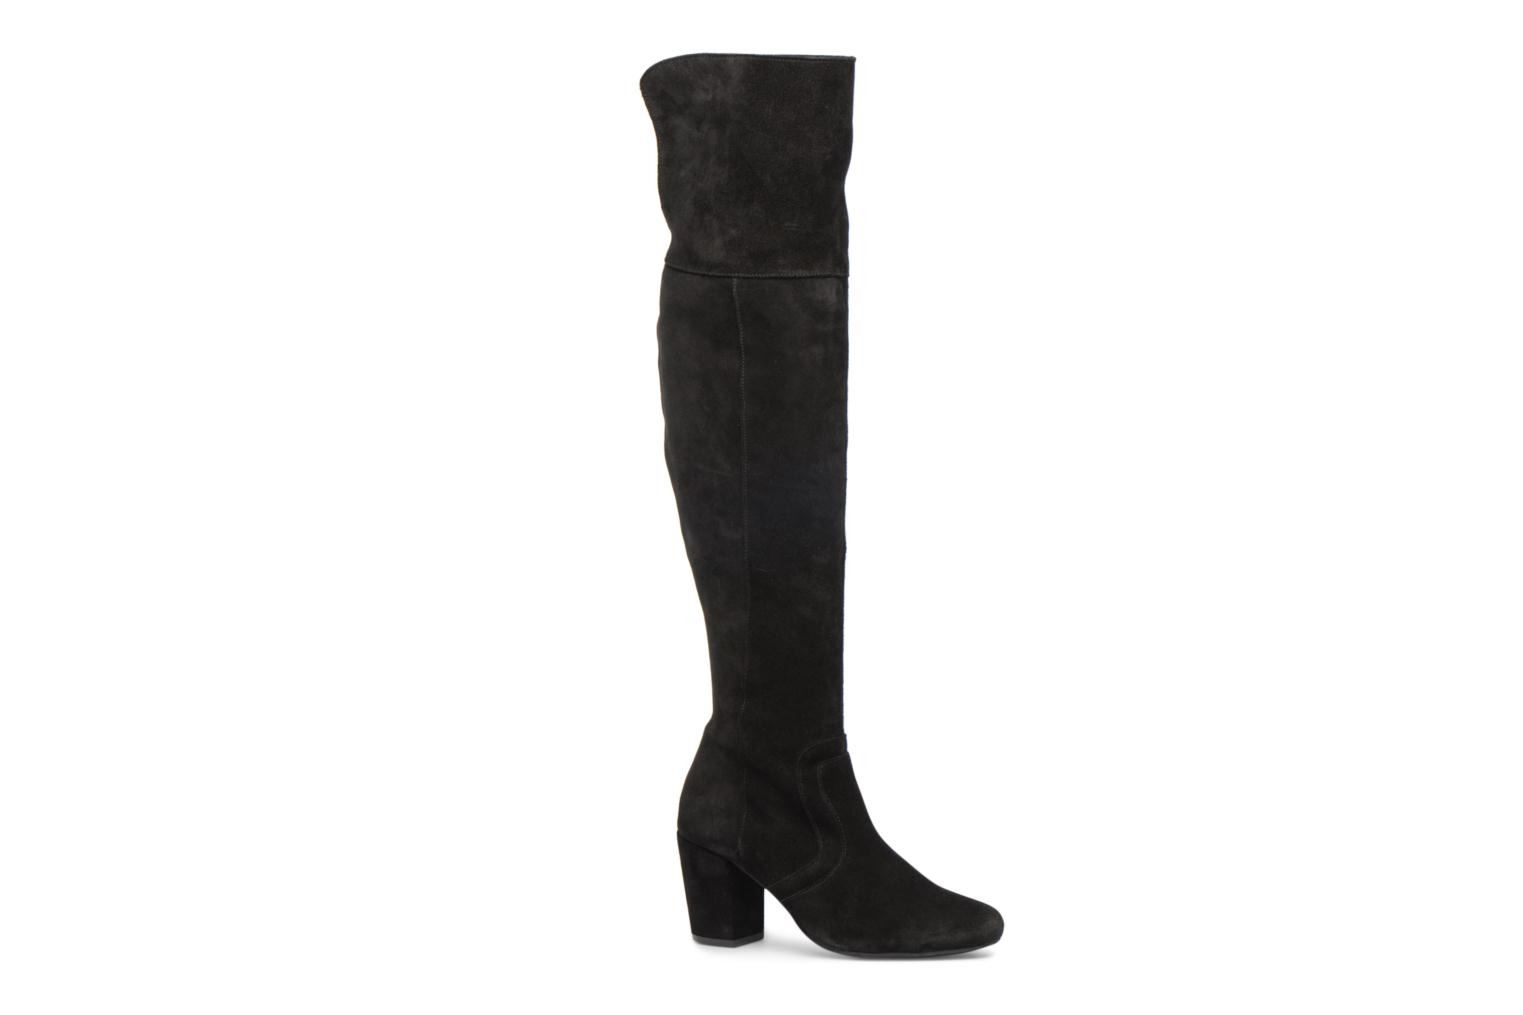 SKY LEATHER OVERKNEE BOOT par Vero Moda